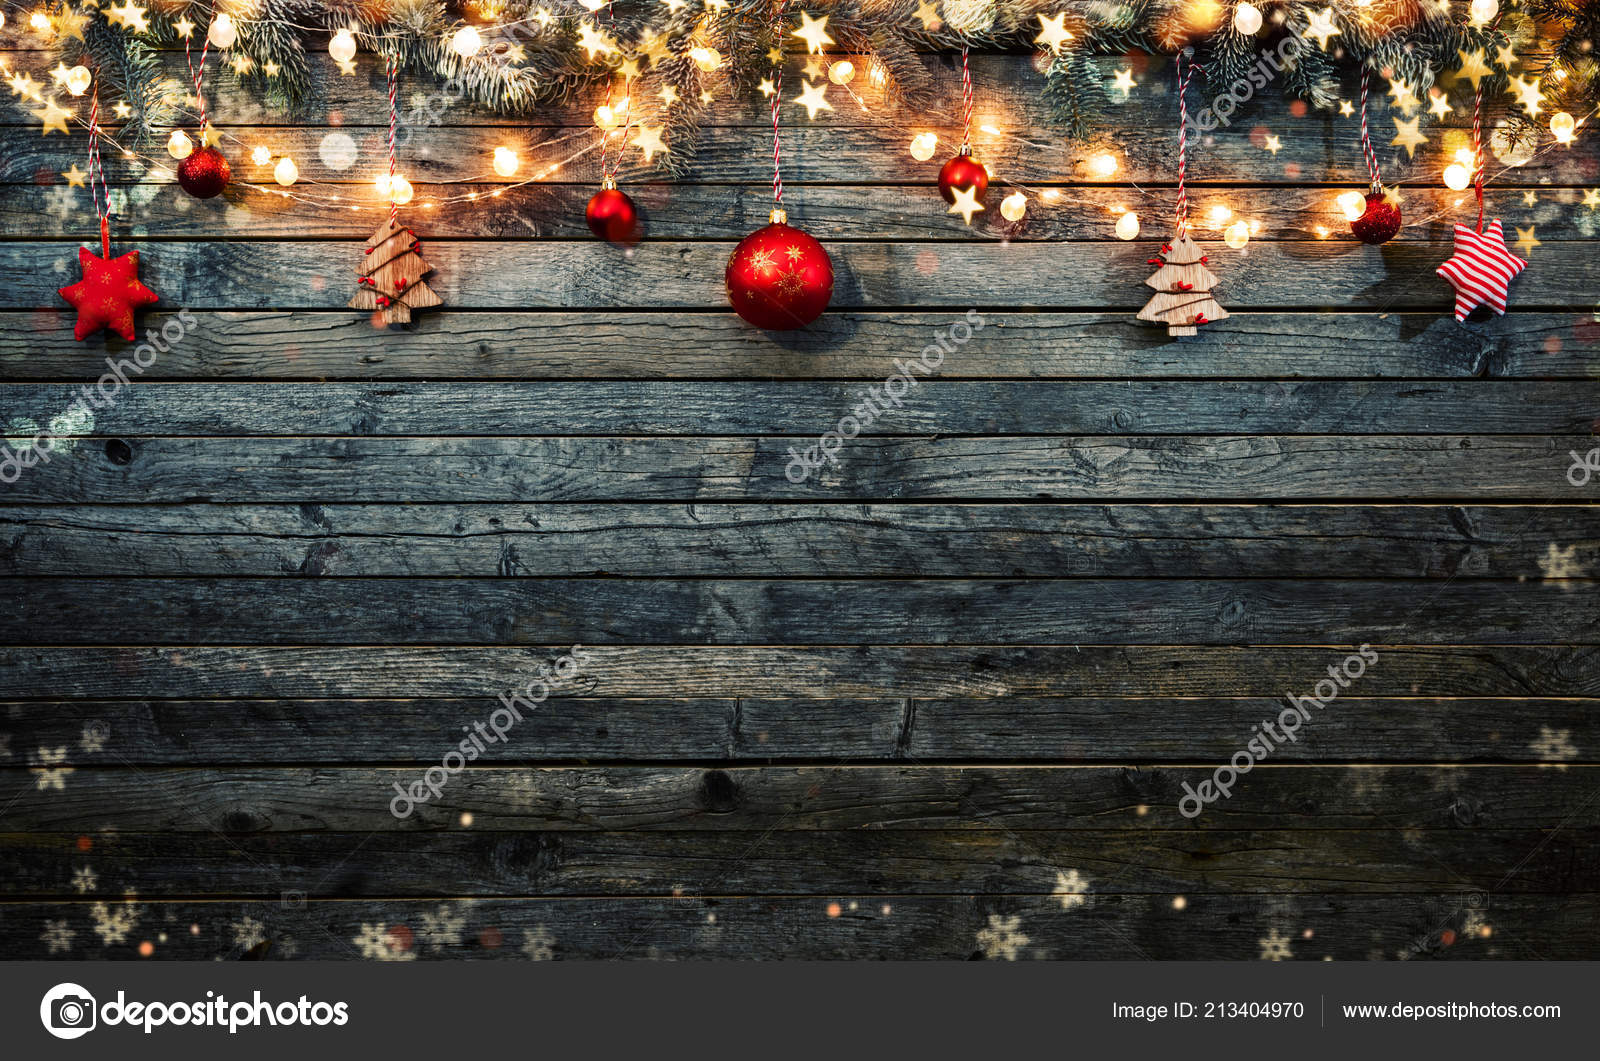 Decorative Christmas Rustic Background Wooden Planks Free